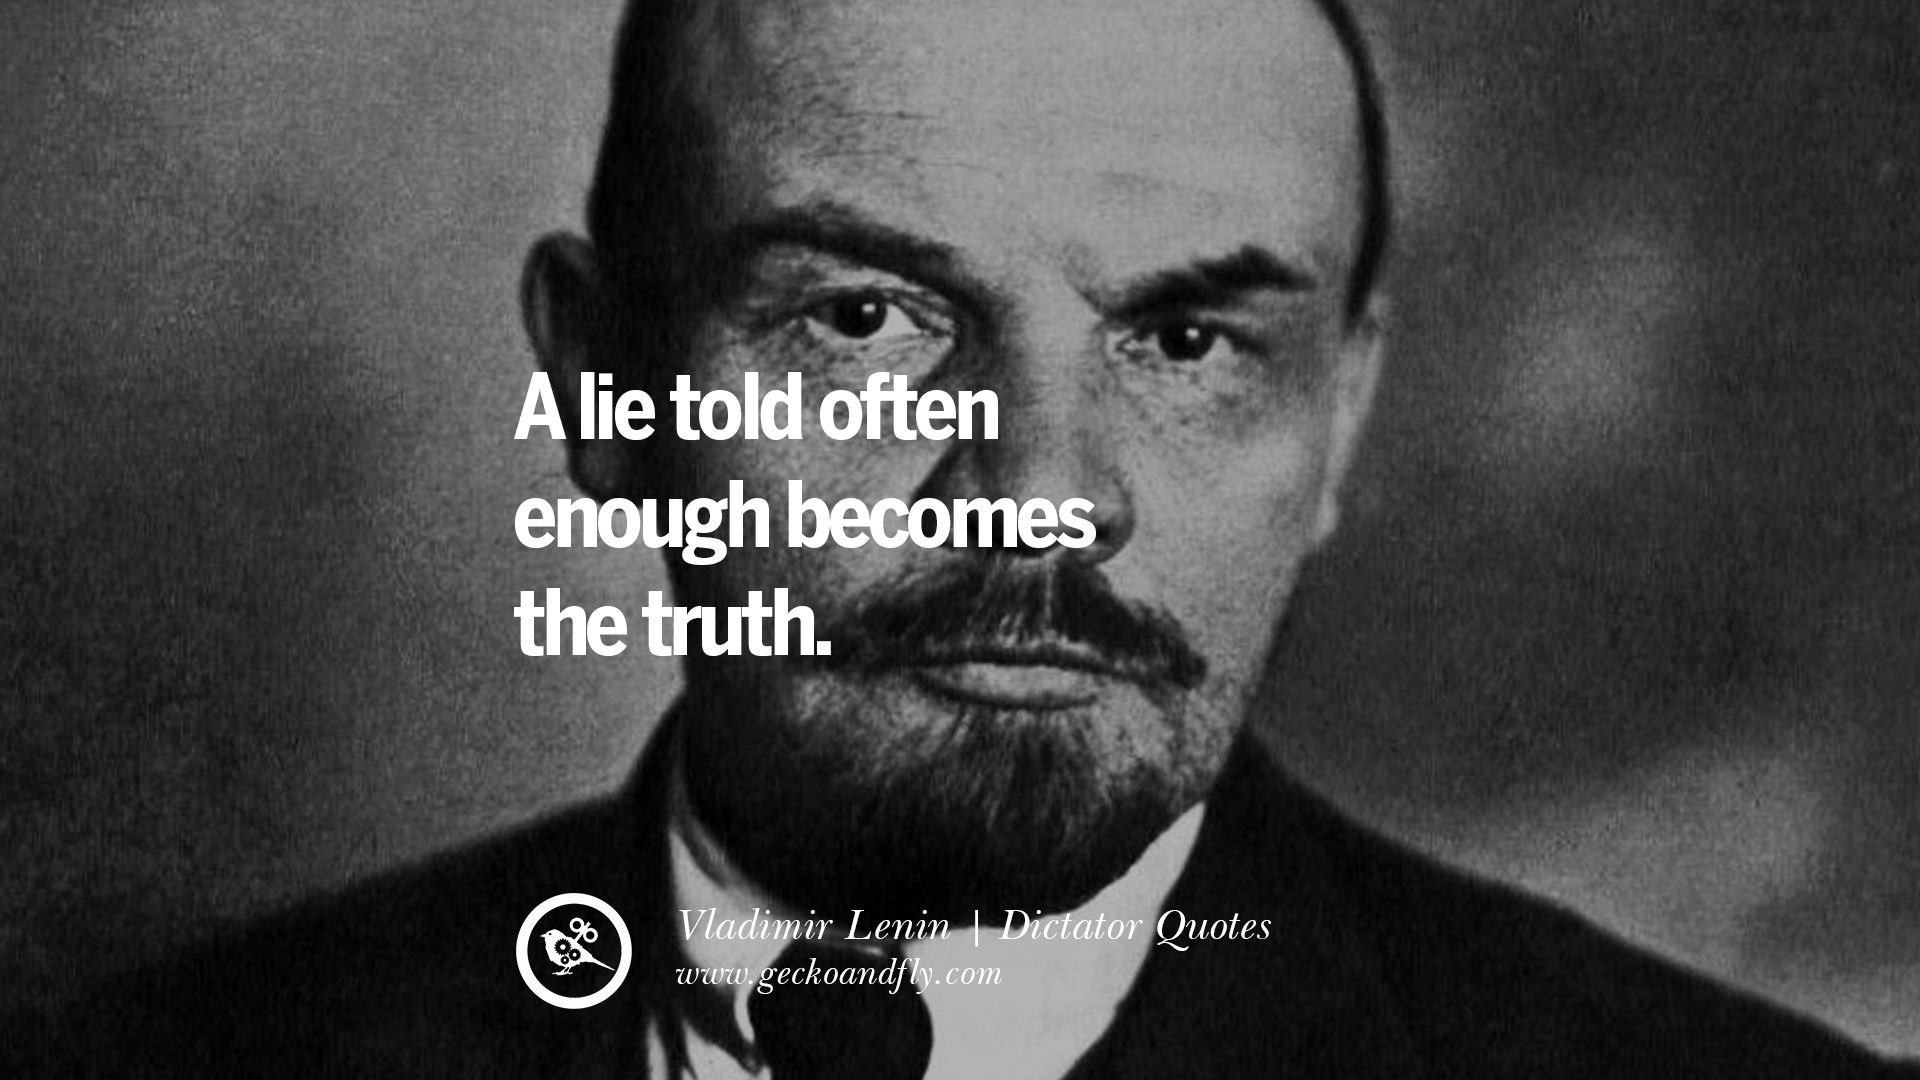 10 Famous Quotes By Some of the World s Worst Dictators A lie told often enough becomes the truth    Vladimir Lenin Famous Quotes  By Some